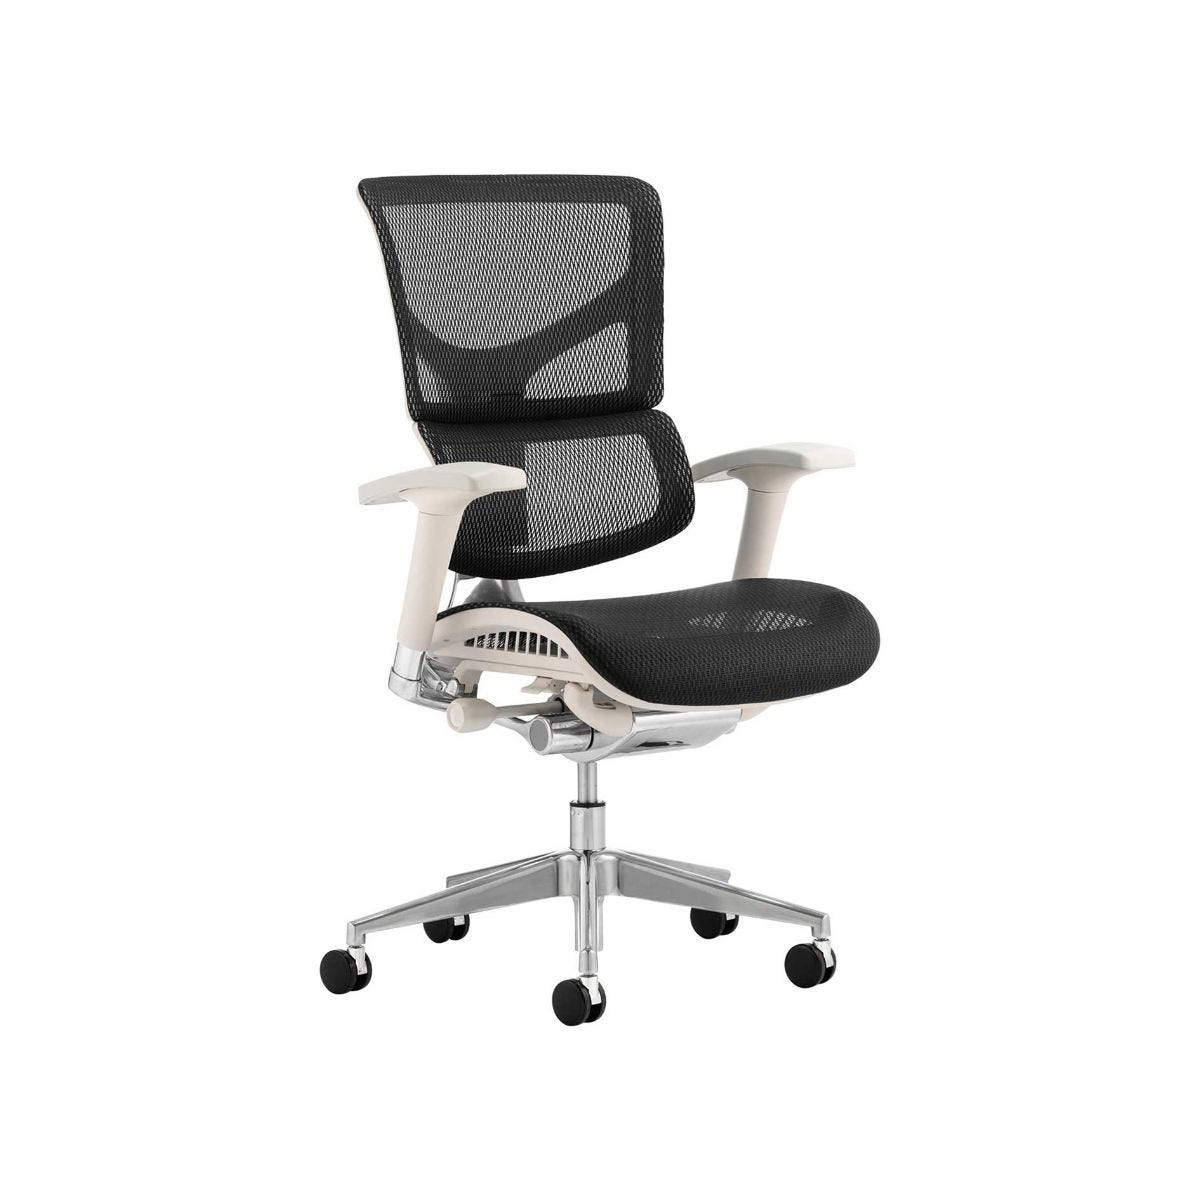 Ergonomic Mesh Office Chair, Grey